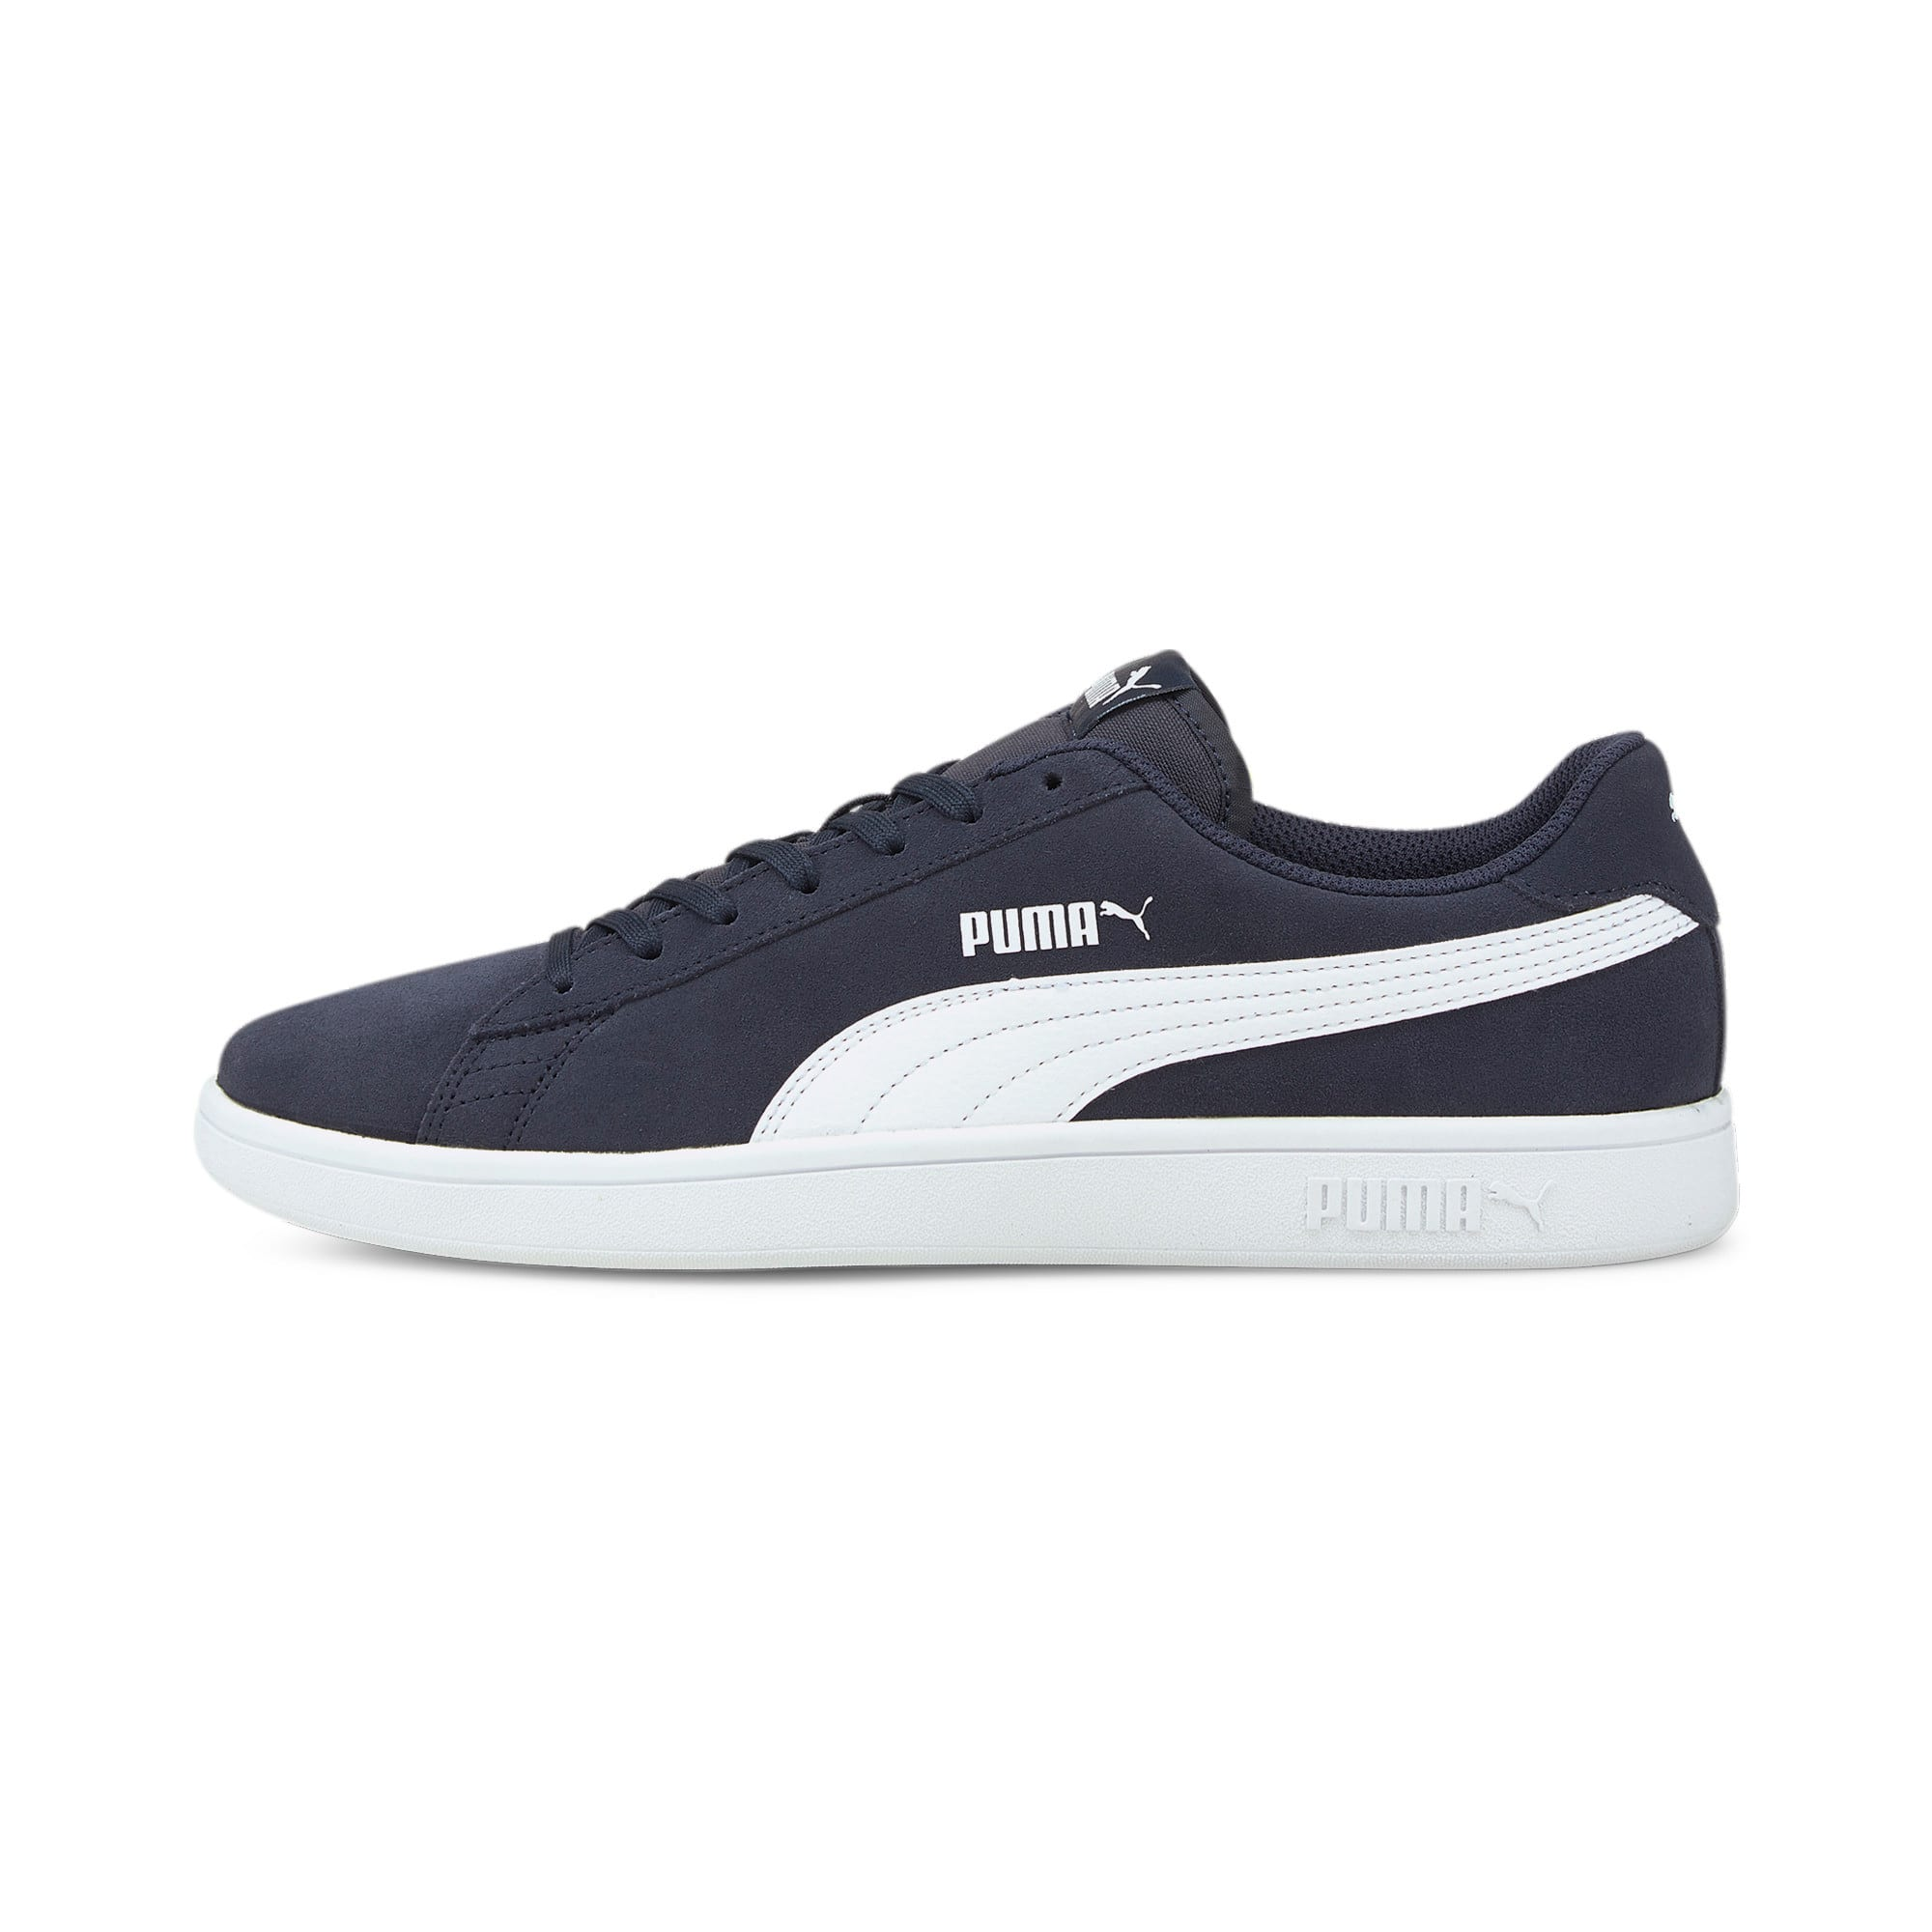 Thumbnail 1 of Smash v2 Trainers, Peacoat-Puma White, medium